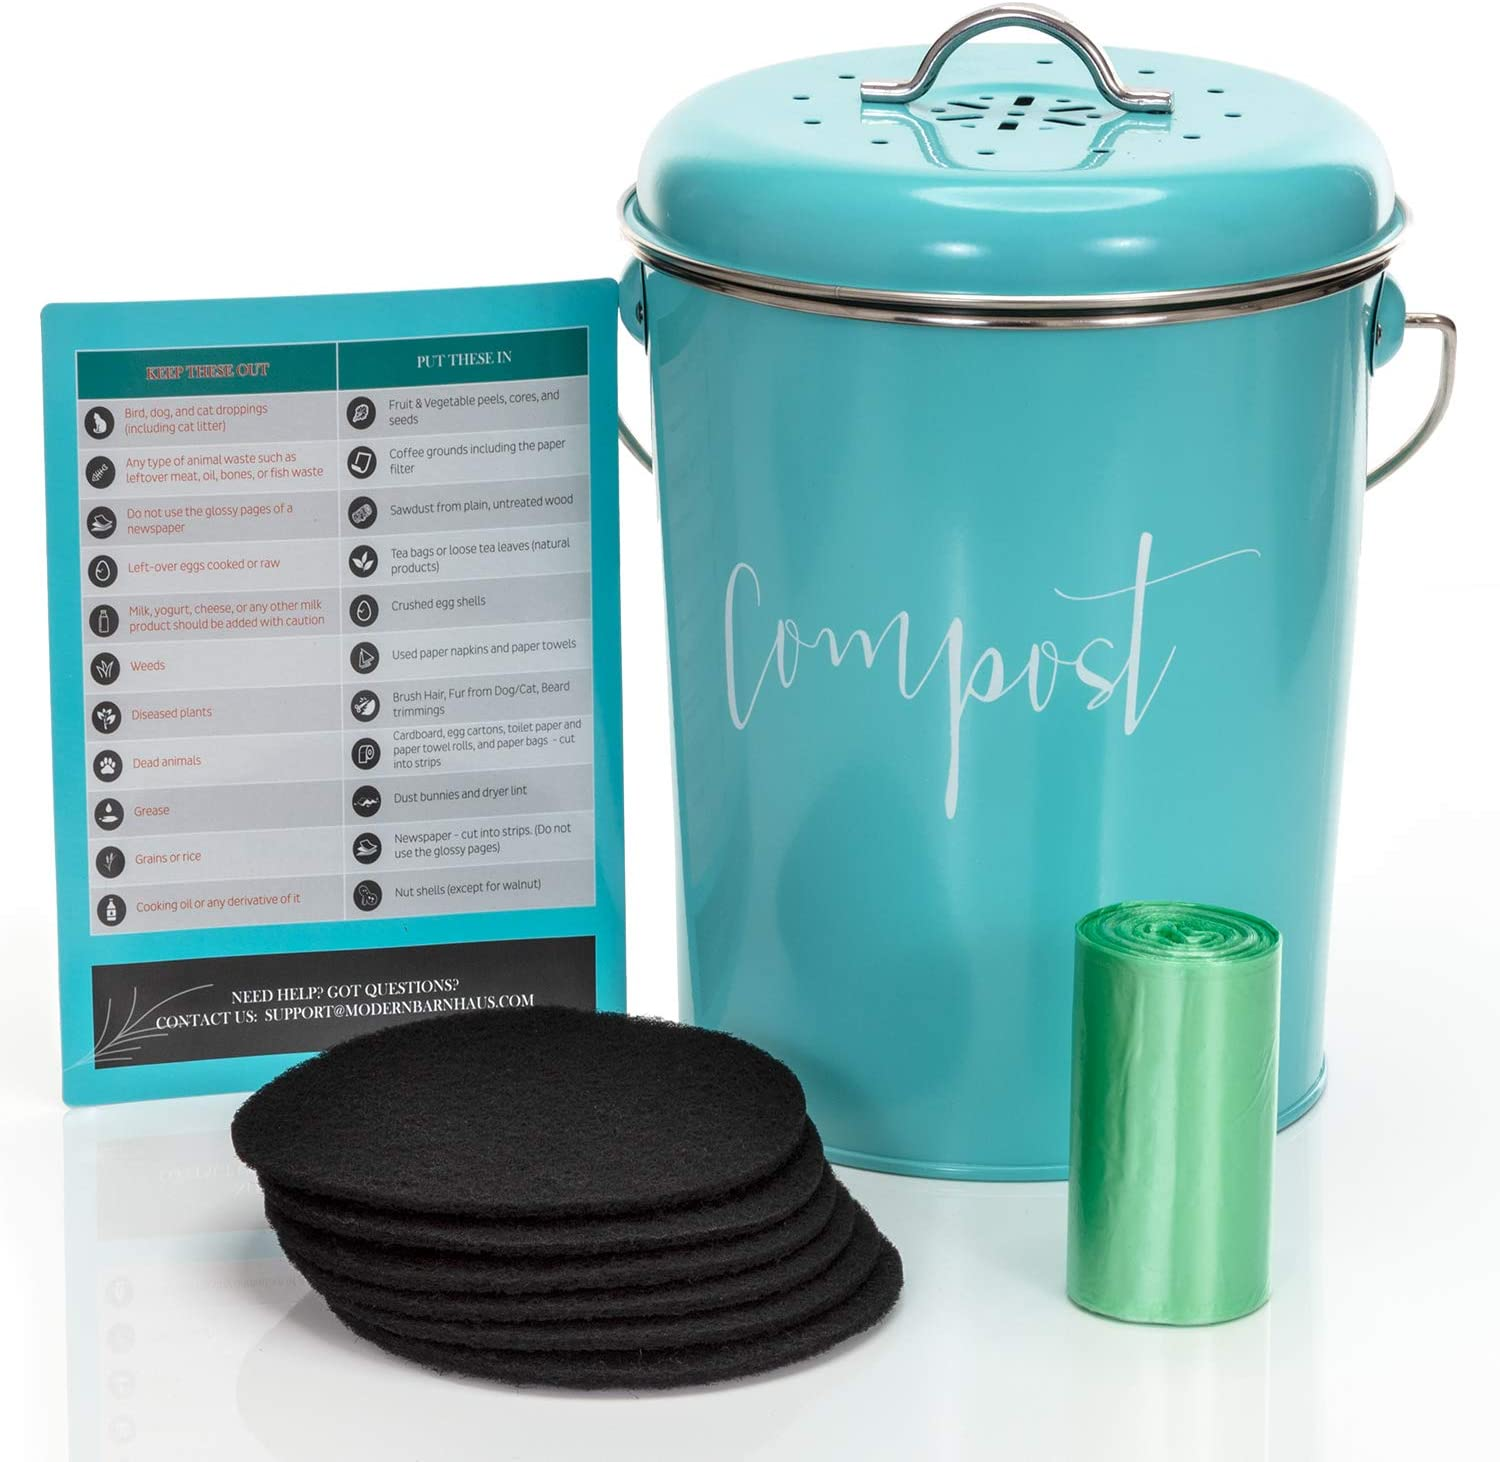 Buy Compost Bin For Kitchen Counter Stainless Steel Countertop Compost Container As 1 3 Gallon Indoor Compost Bucket Or Counter Composter Pail With Lid 50 Compost Bags And 6 Charcoal Filters Turquoise Online